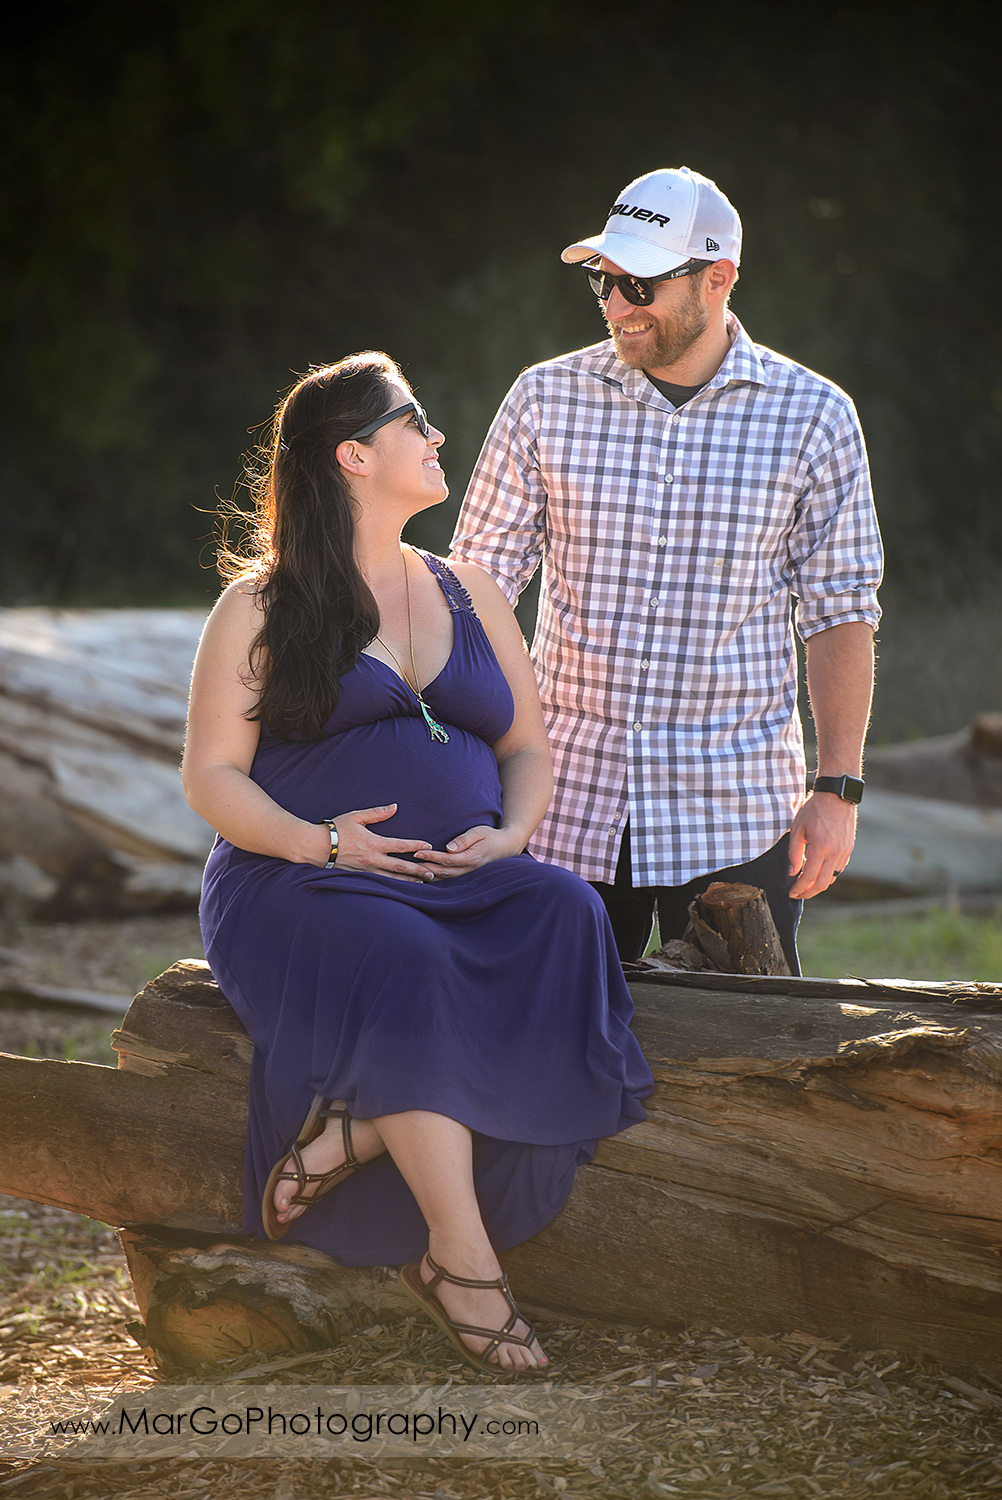 man in checkered shirt standing next to pregnant woman in long violet dress sitting on the big log during maternity session at Ulistac Natural Area in Santa Clara